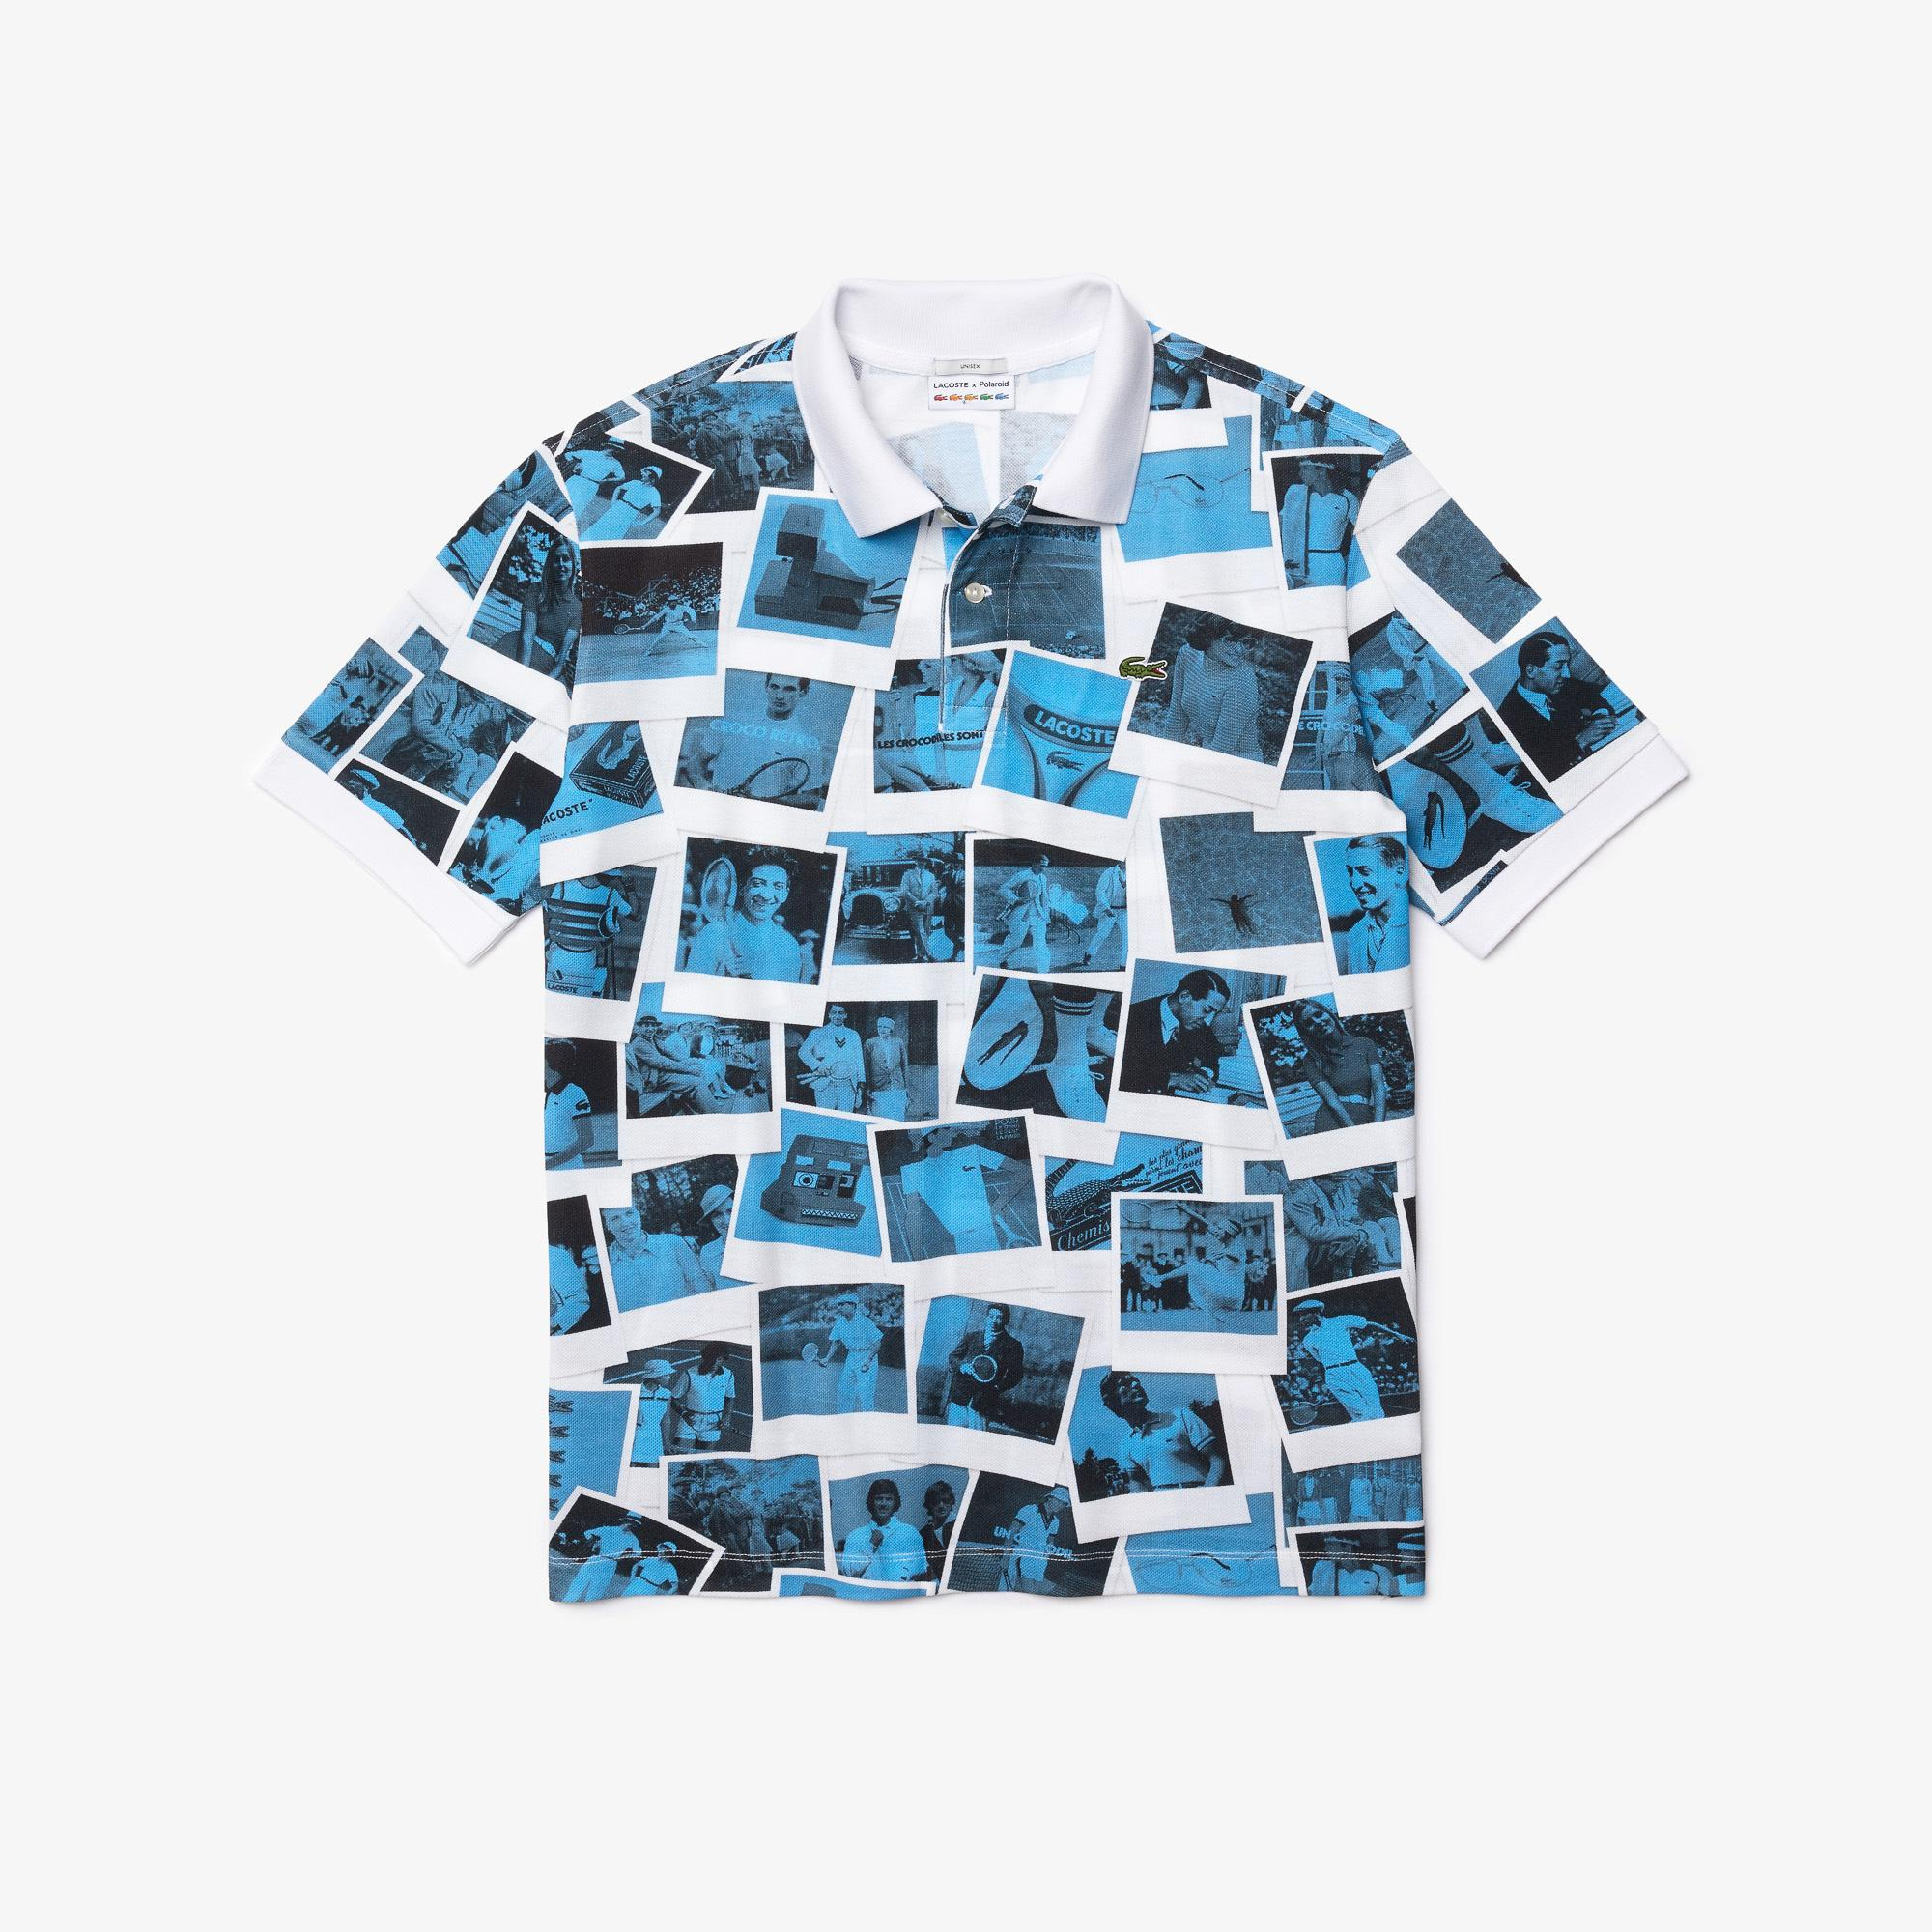 Lacoste L!ve X Polaroid Unisex Loose Fit Baskılı Mavi Polo